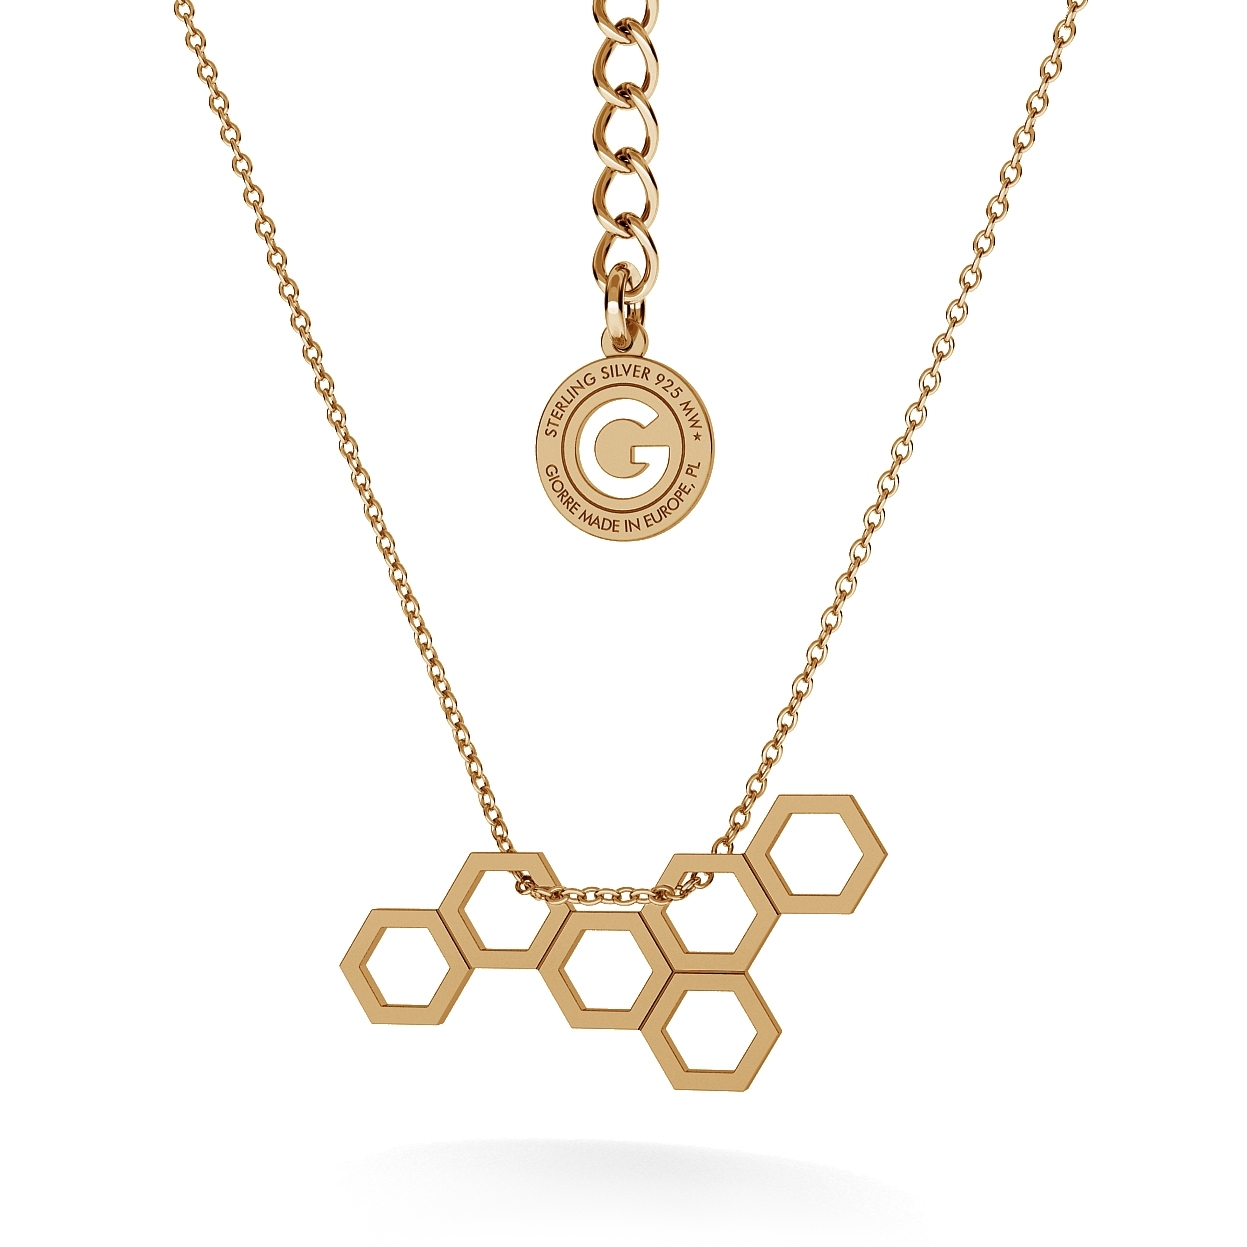 HONEYCOMB NECKLACE, RHODIUM OR 24K / 18K GOLD PLATED